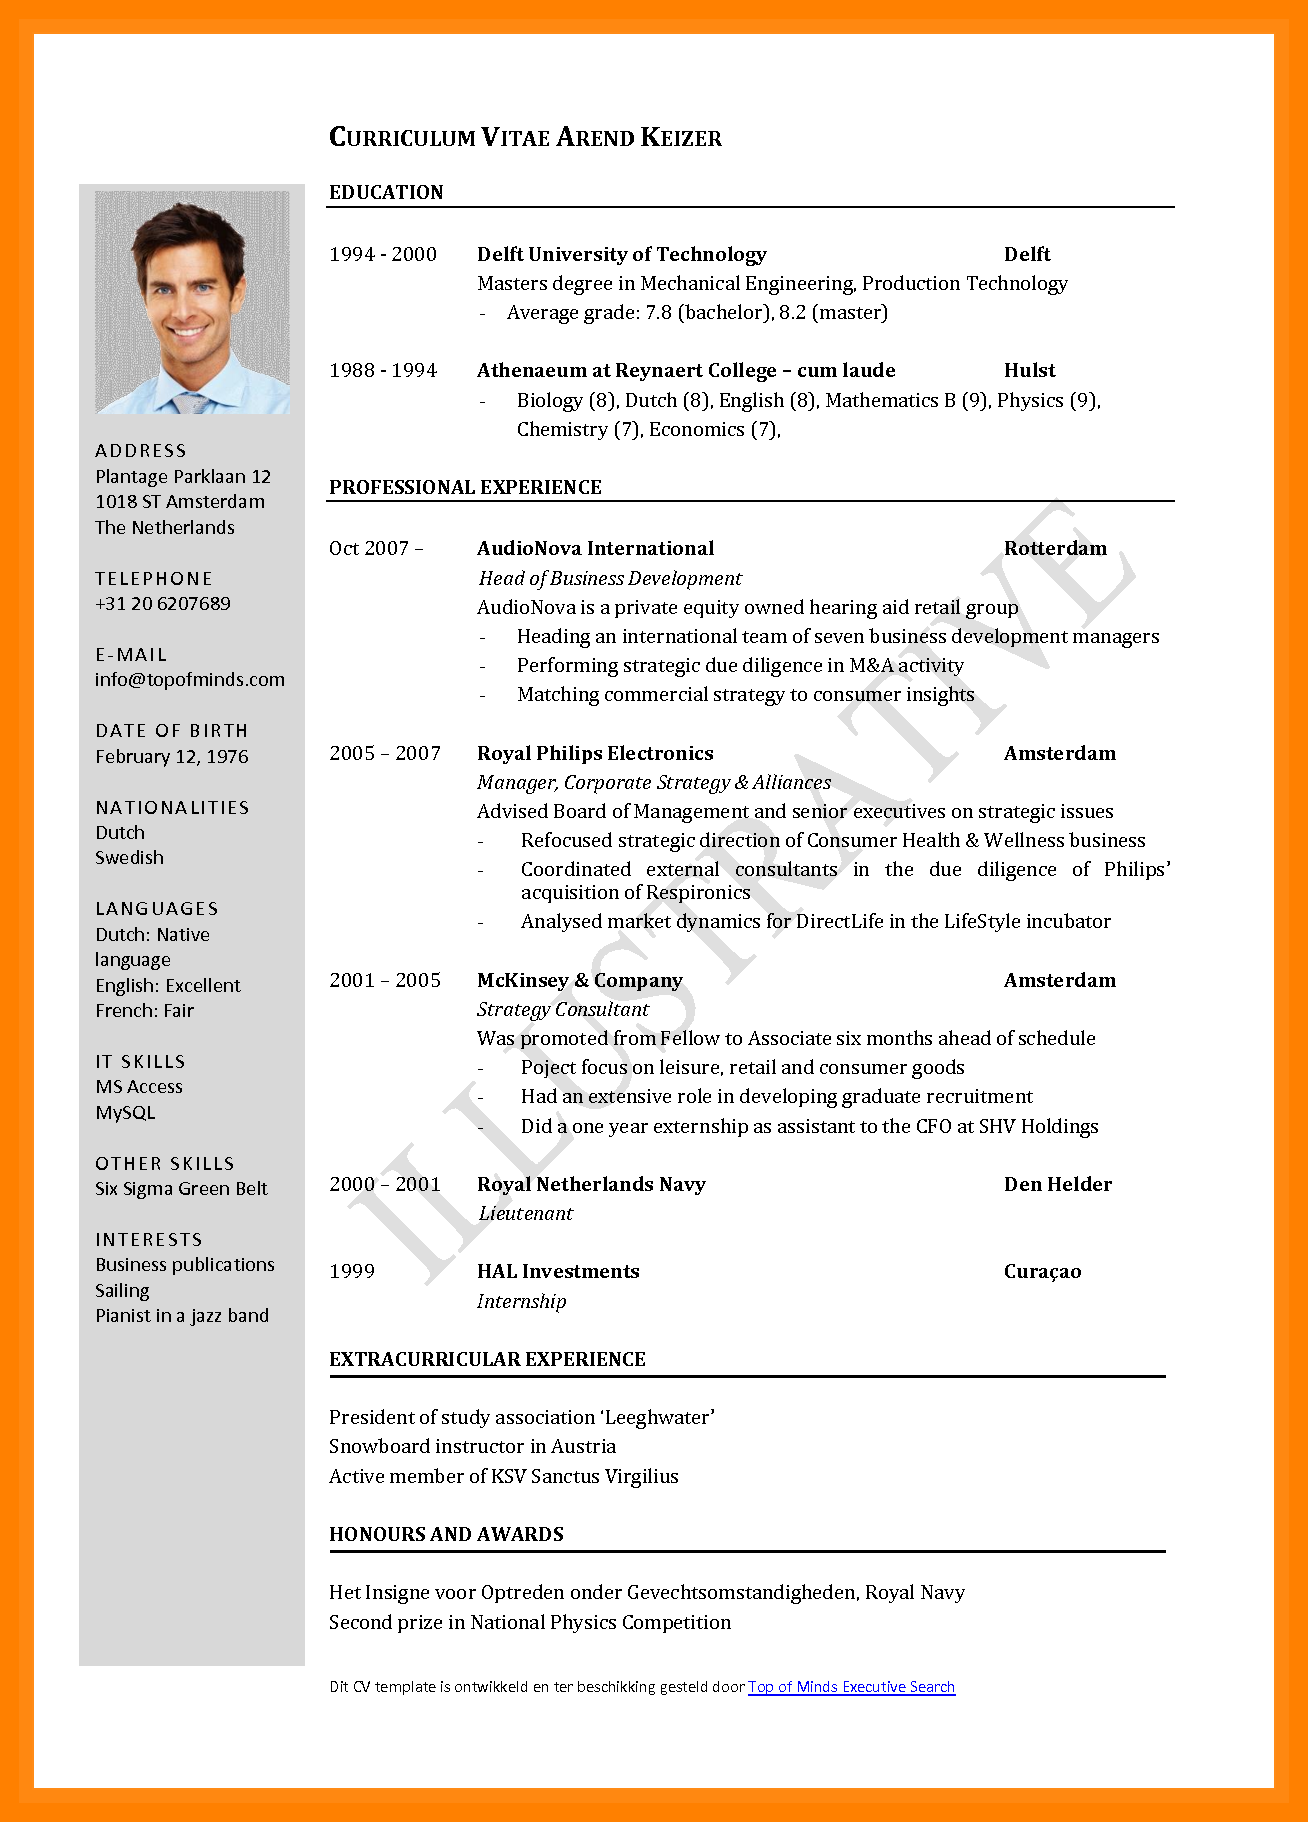 Resume Examples Me Sample Resume Format Curriculum Vitae Format Bio Data For Marriage